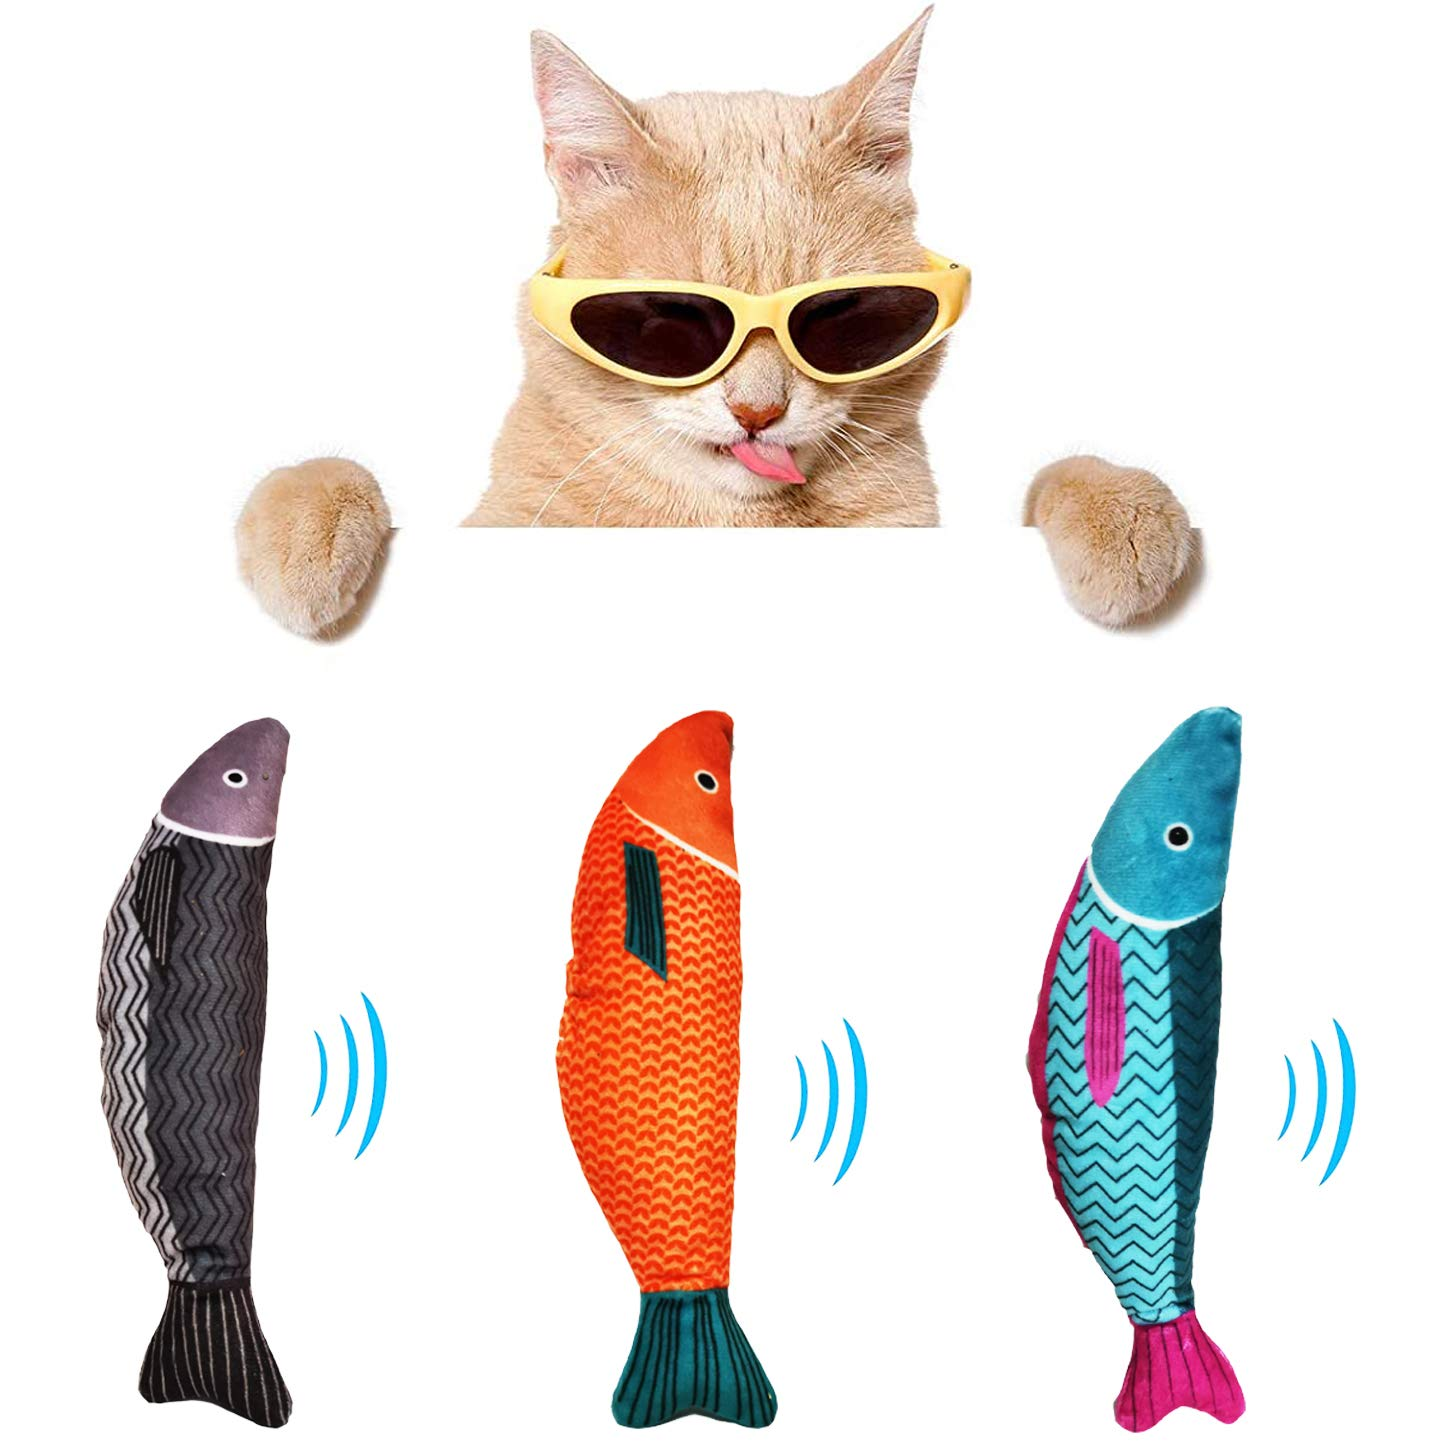 ZFIYP Catnip Toys for Indoor Cats, Interactive Cat Toys for Indoor Cats, Plush Cat Chew Toy Teeth Cleaning